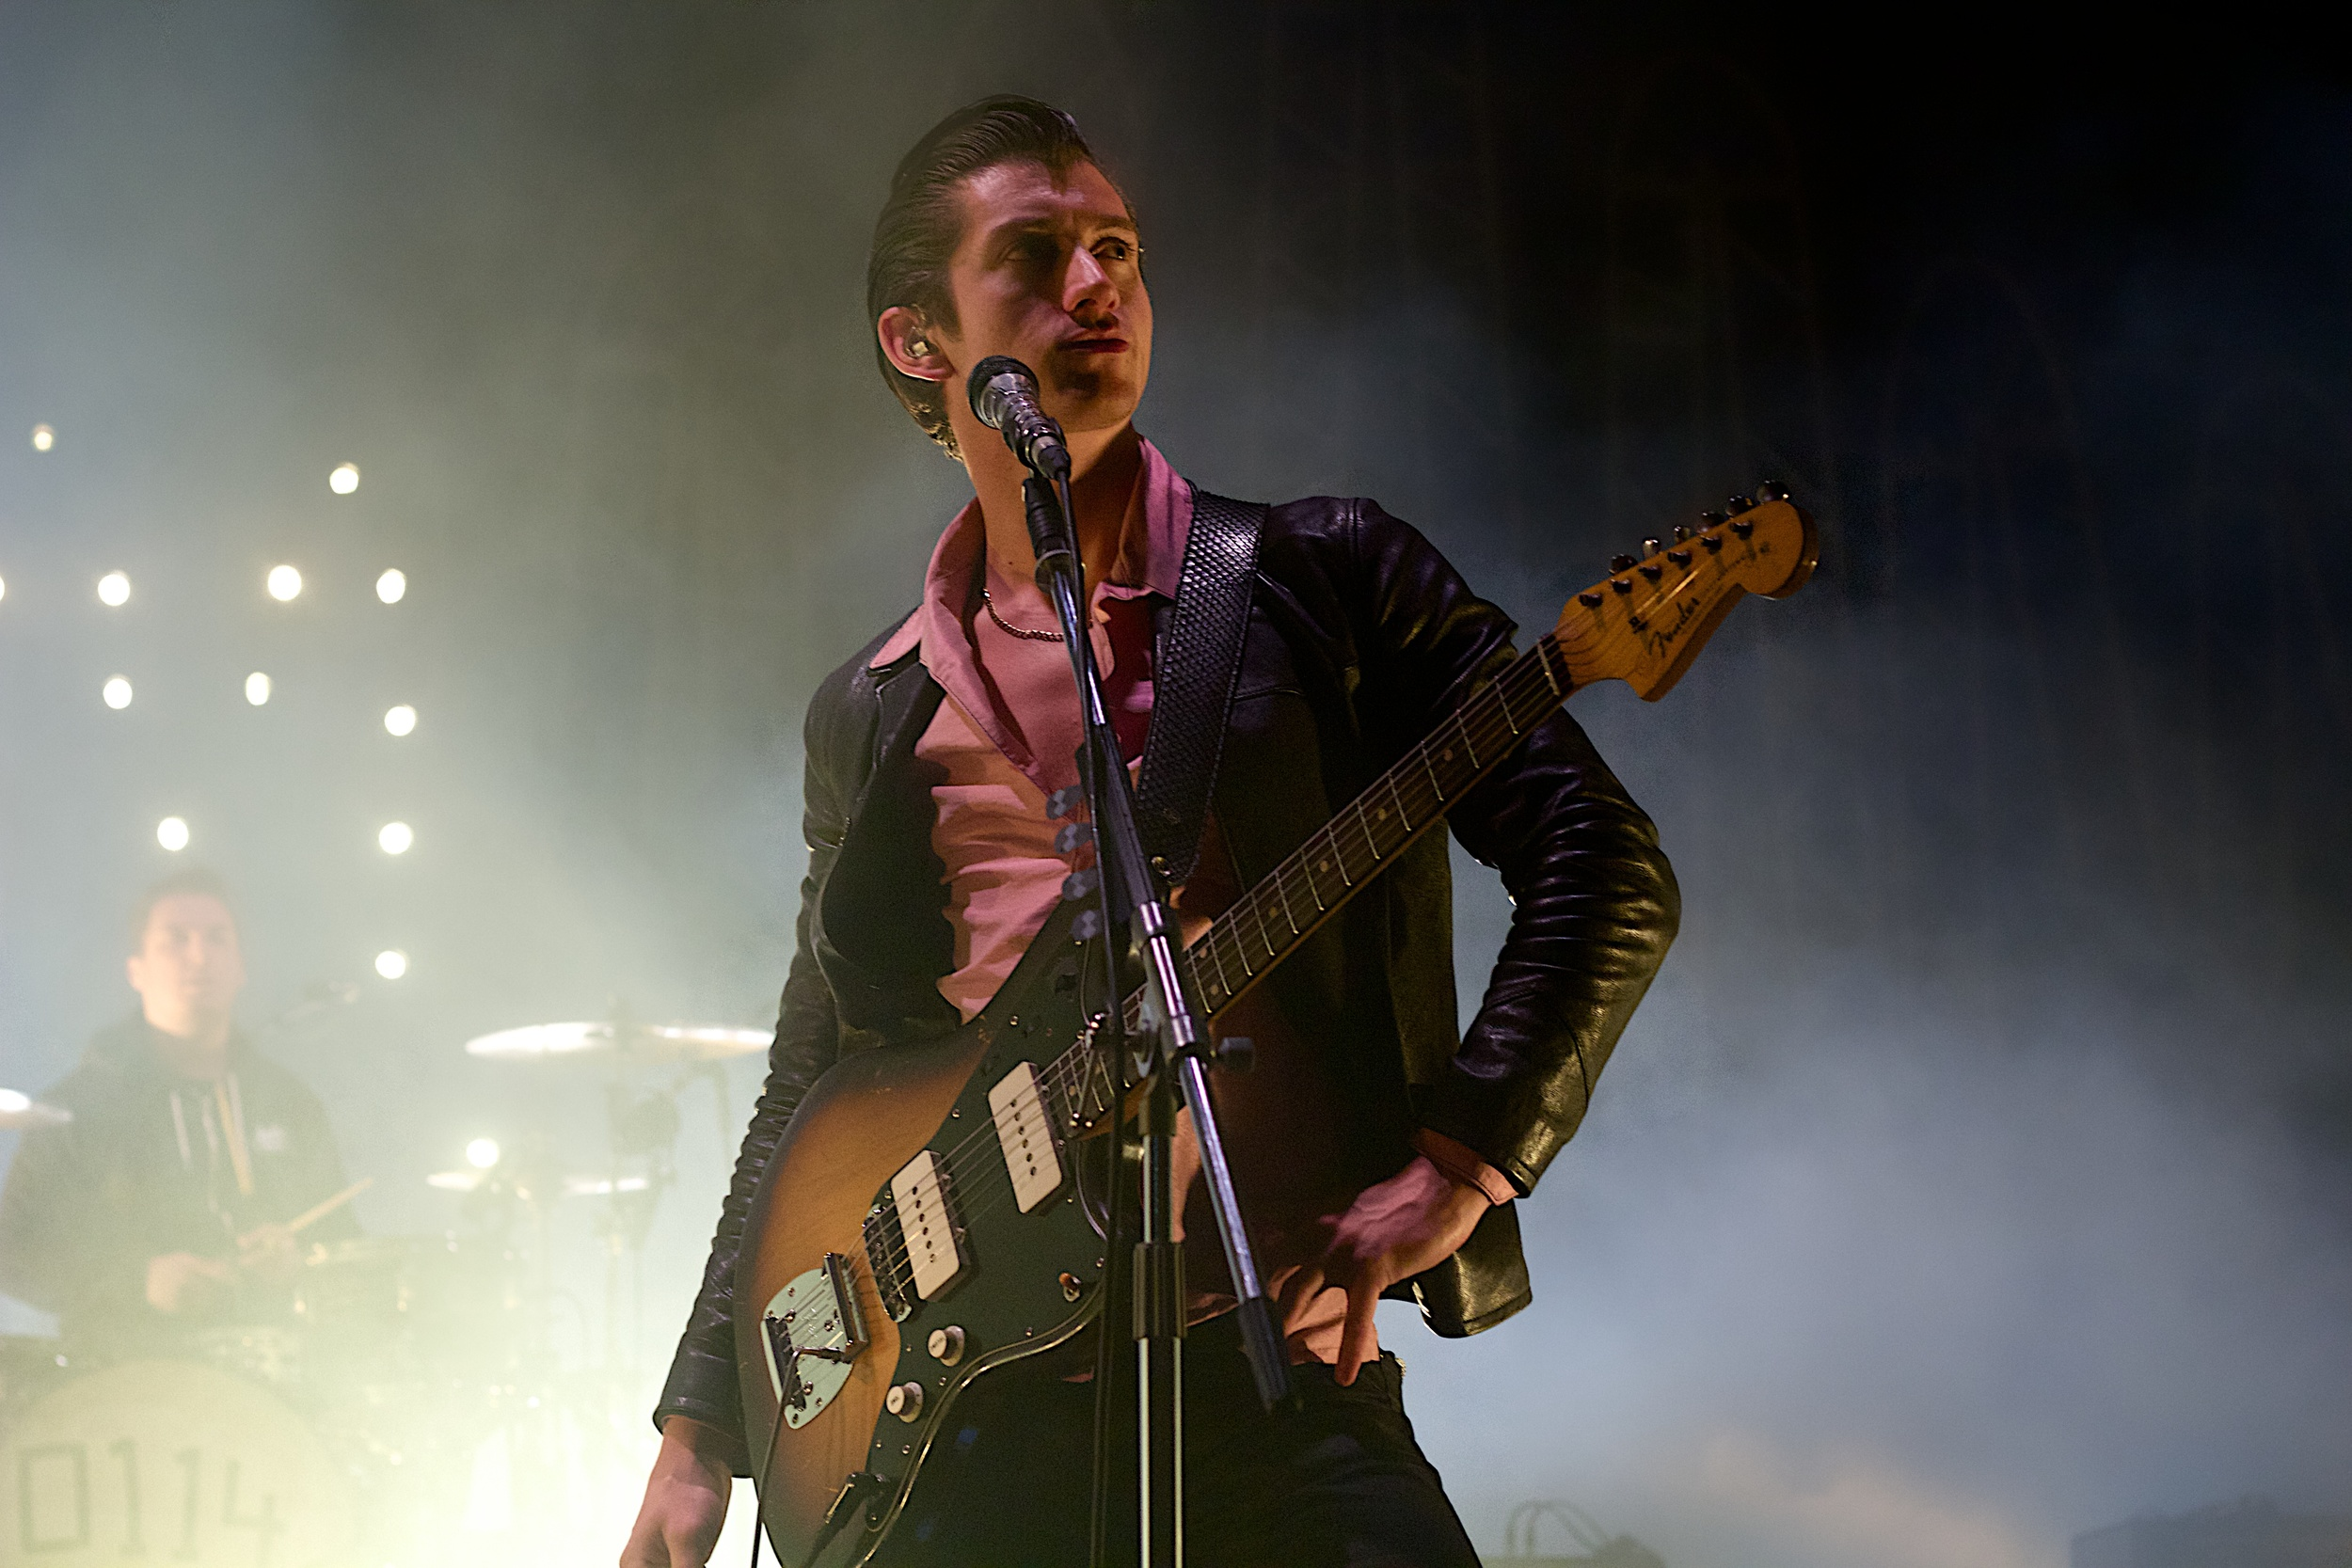 Alex Turner being wowed by the awesomeness of Red Rocks (Photo Credit: Robert Castro)